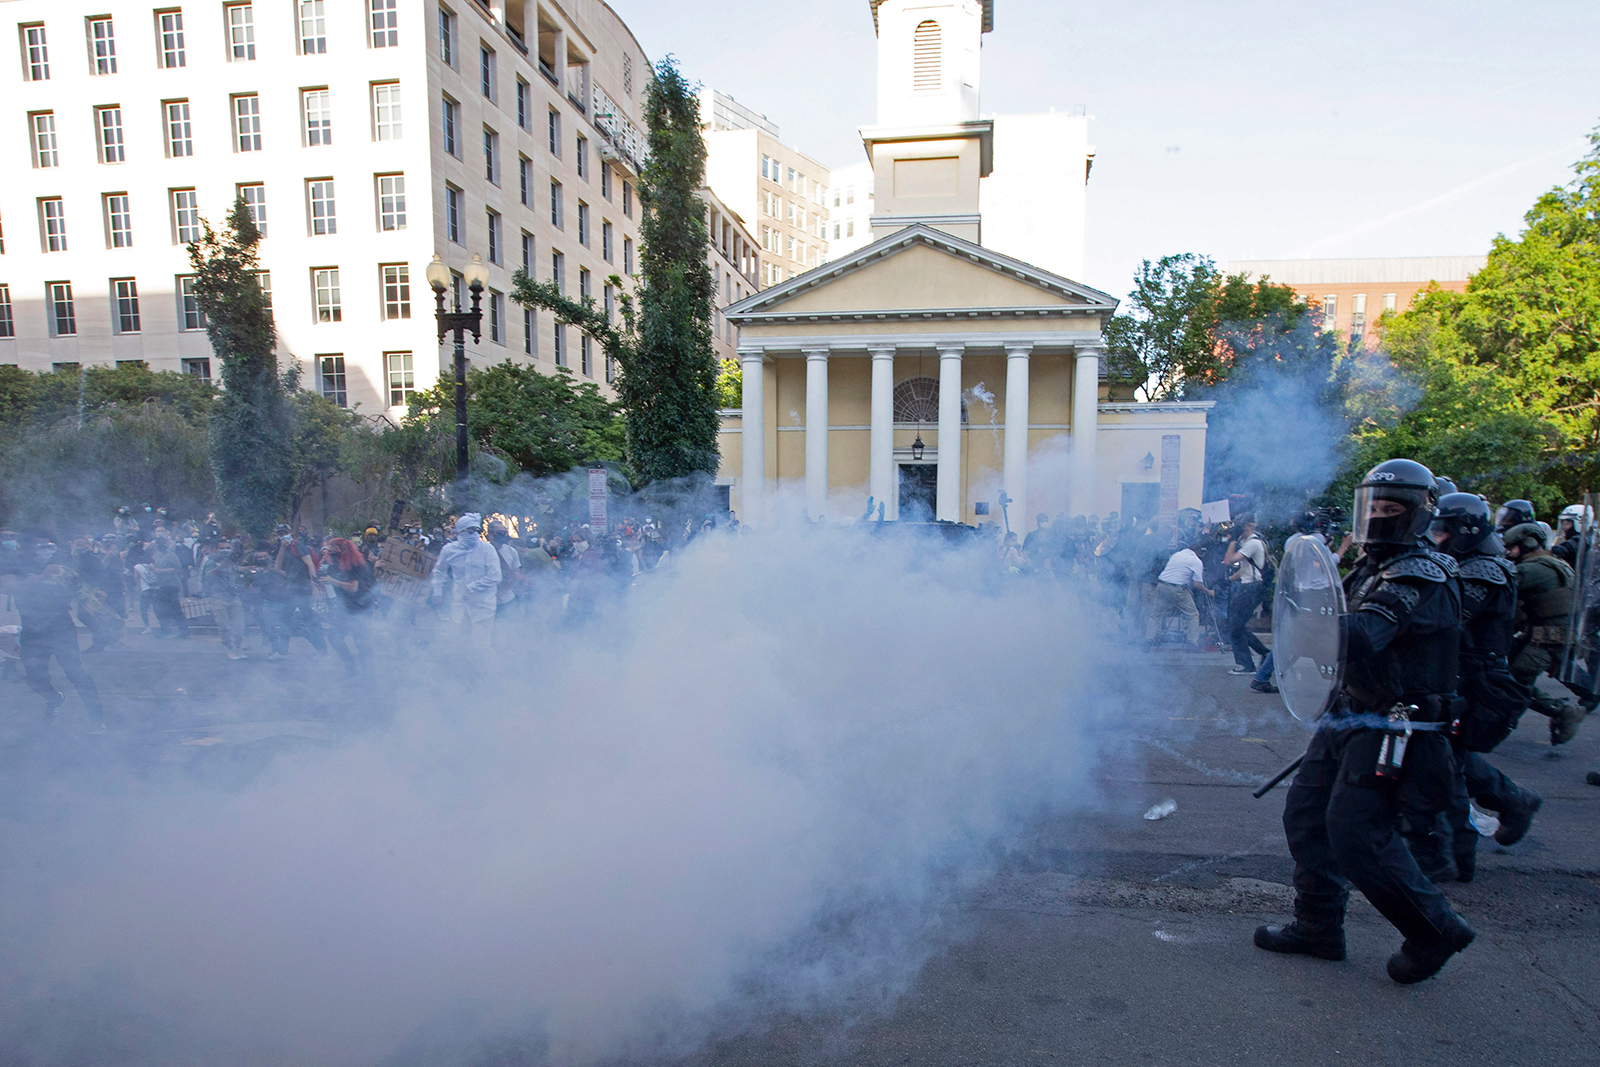 Police officers wearing riot gear push back demonstrators shooting tear gas next to St. John's Episcopal Church outside of the White House in Washington, on June 1.